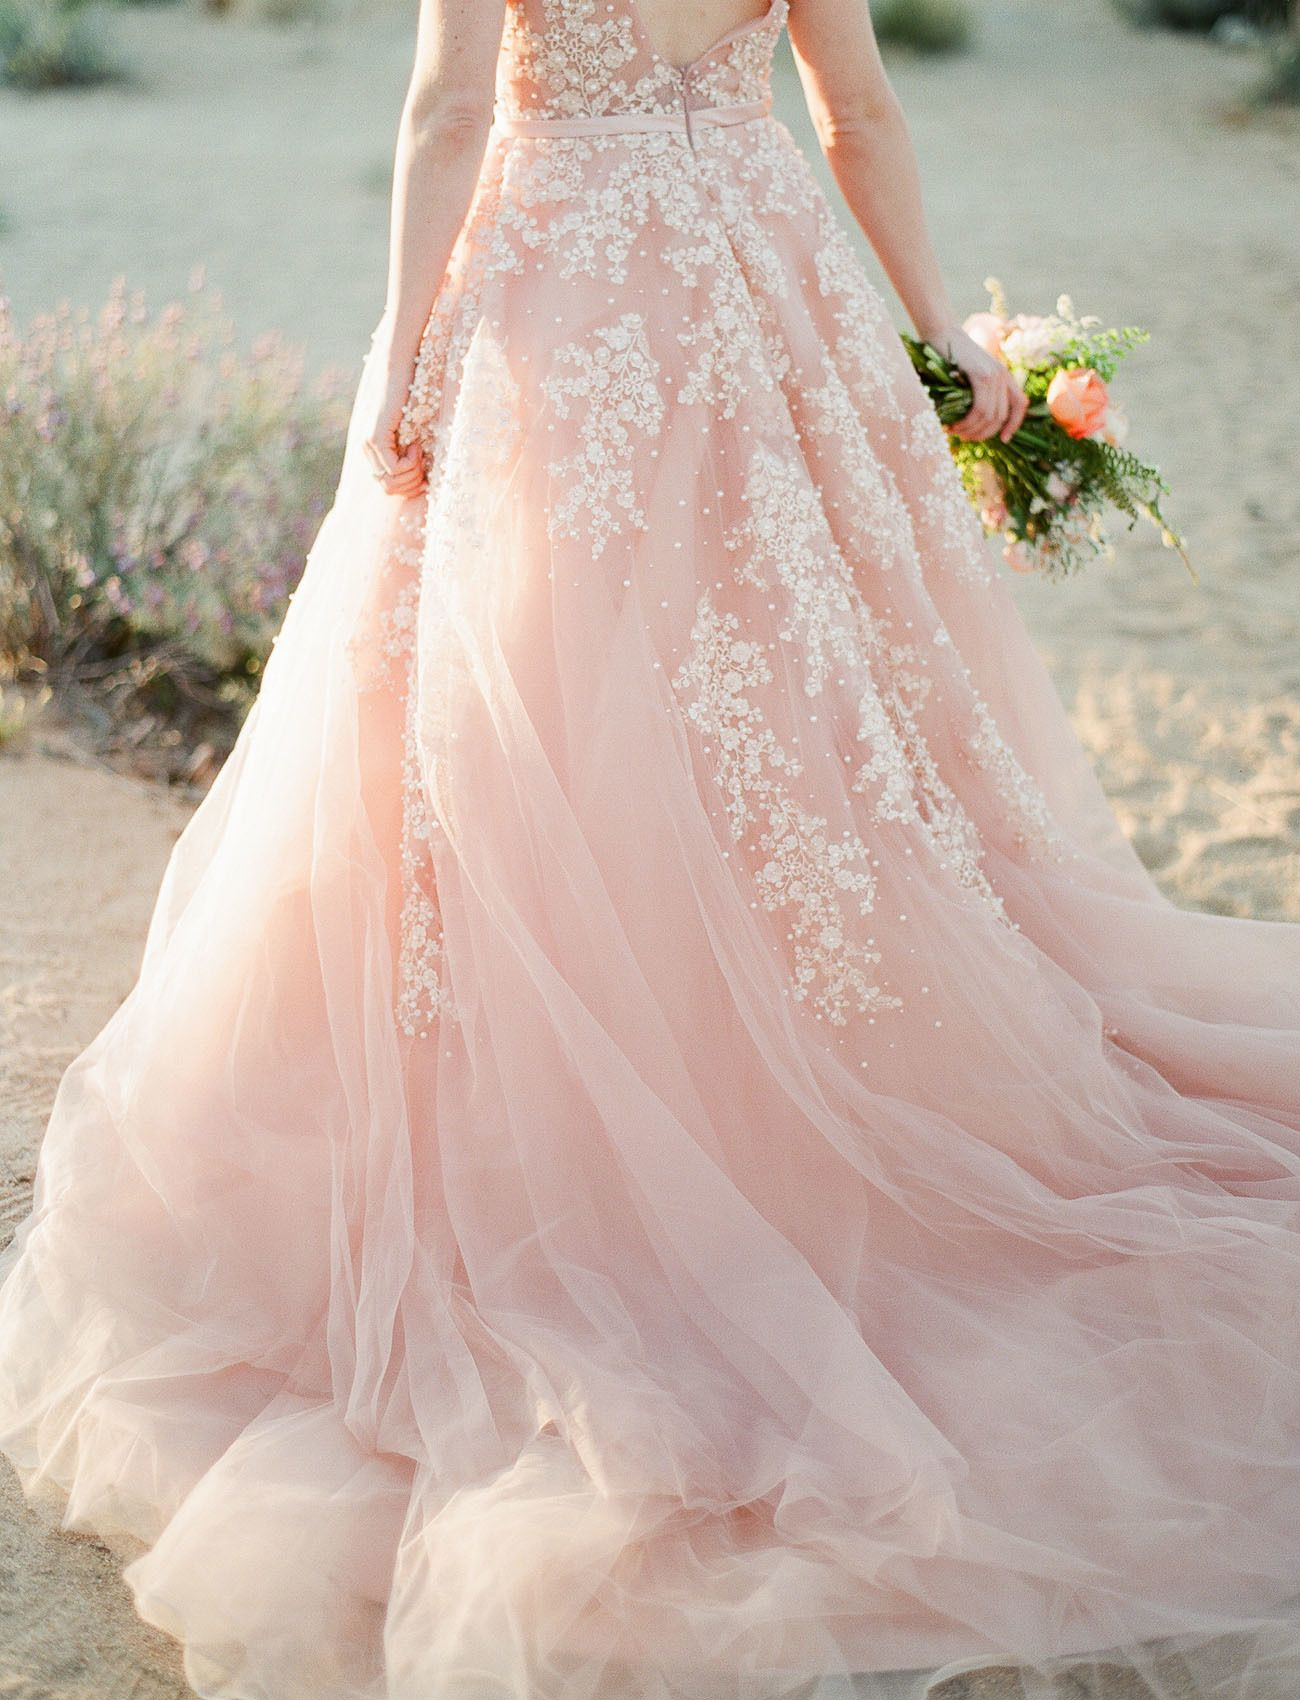 A Dreamy Pink Wedding Dress captured in Joshua Tree | Novios ...